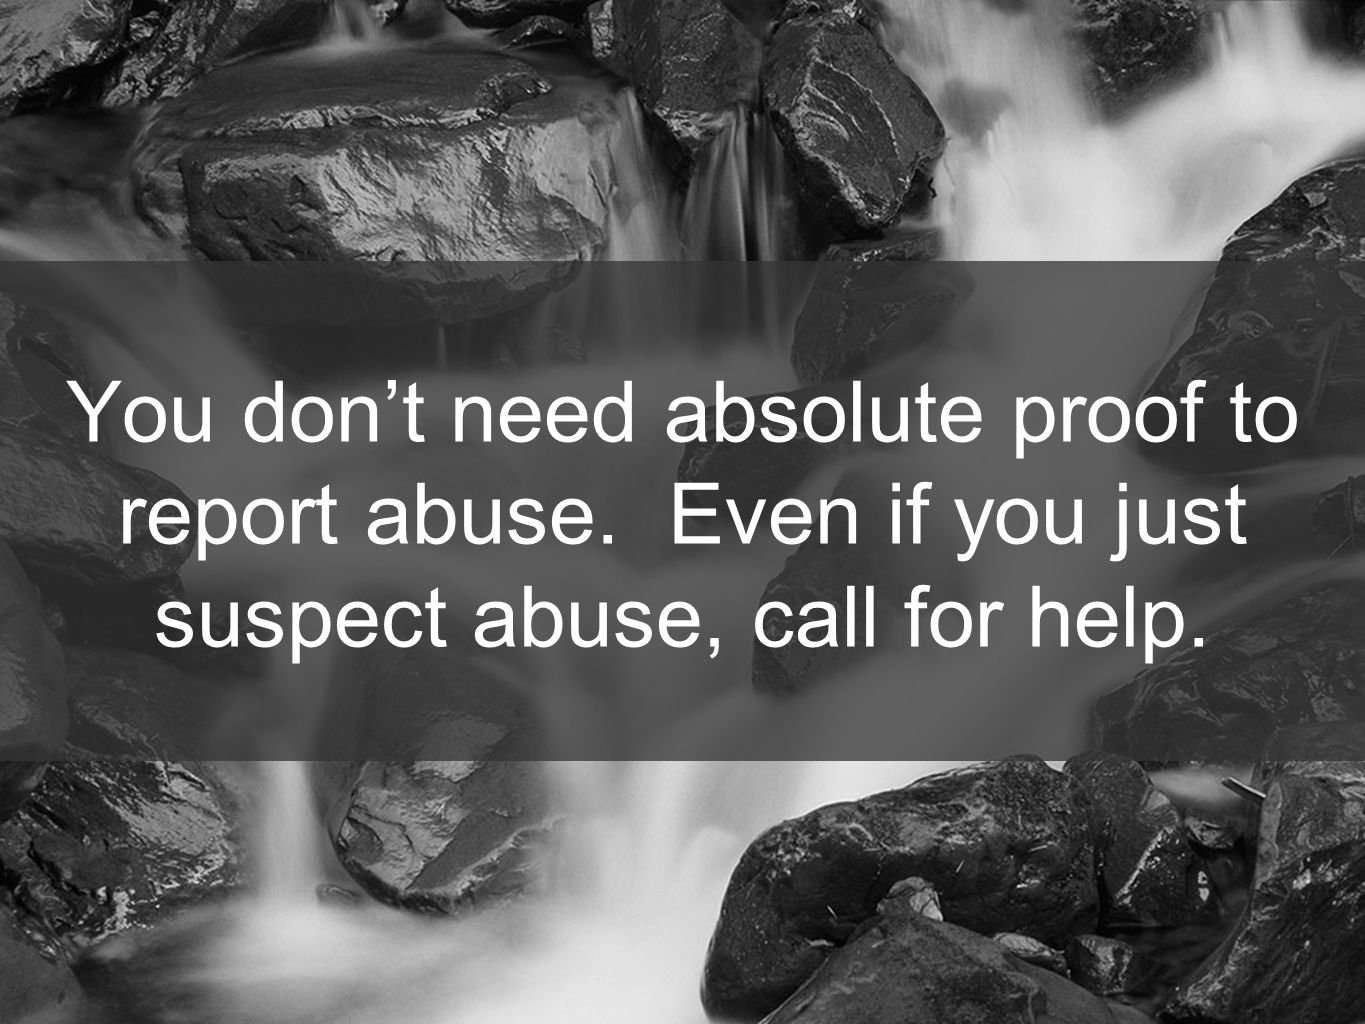 55 You don't need absolute proof to report abuse. Even if you just suspect abuse, call for help.